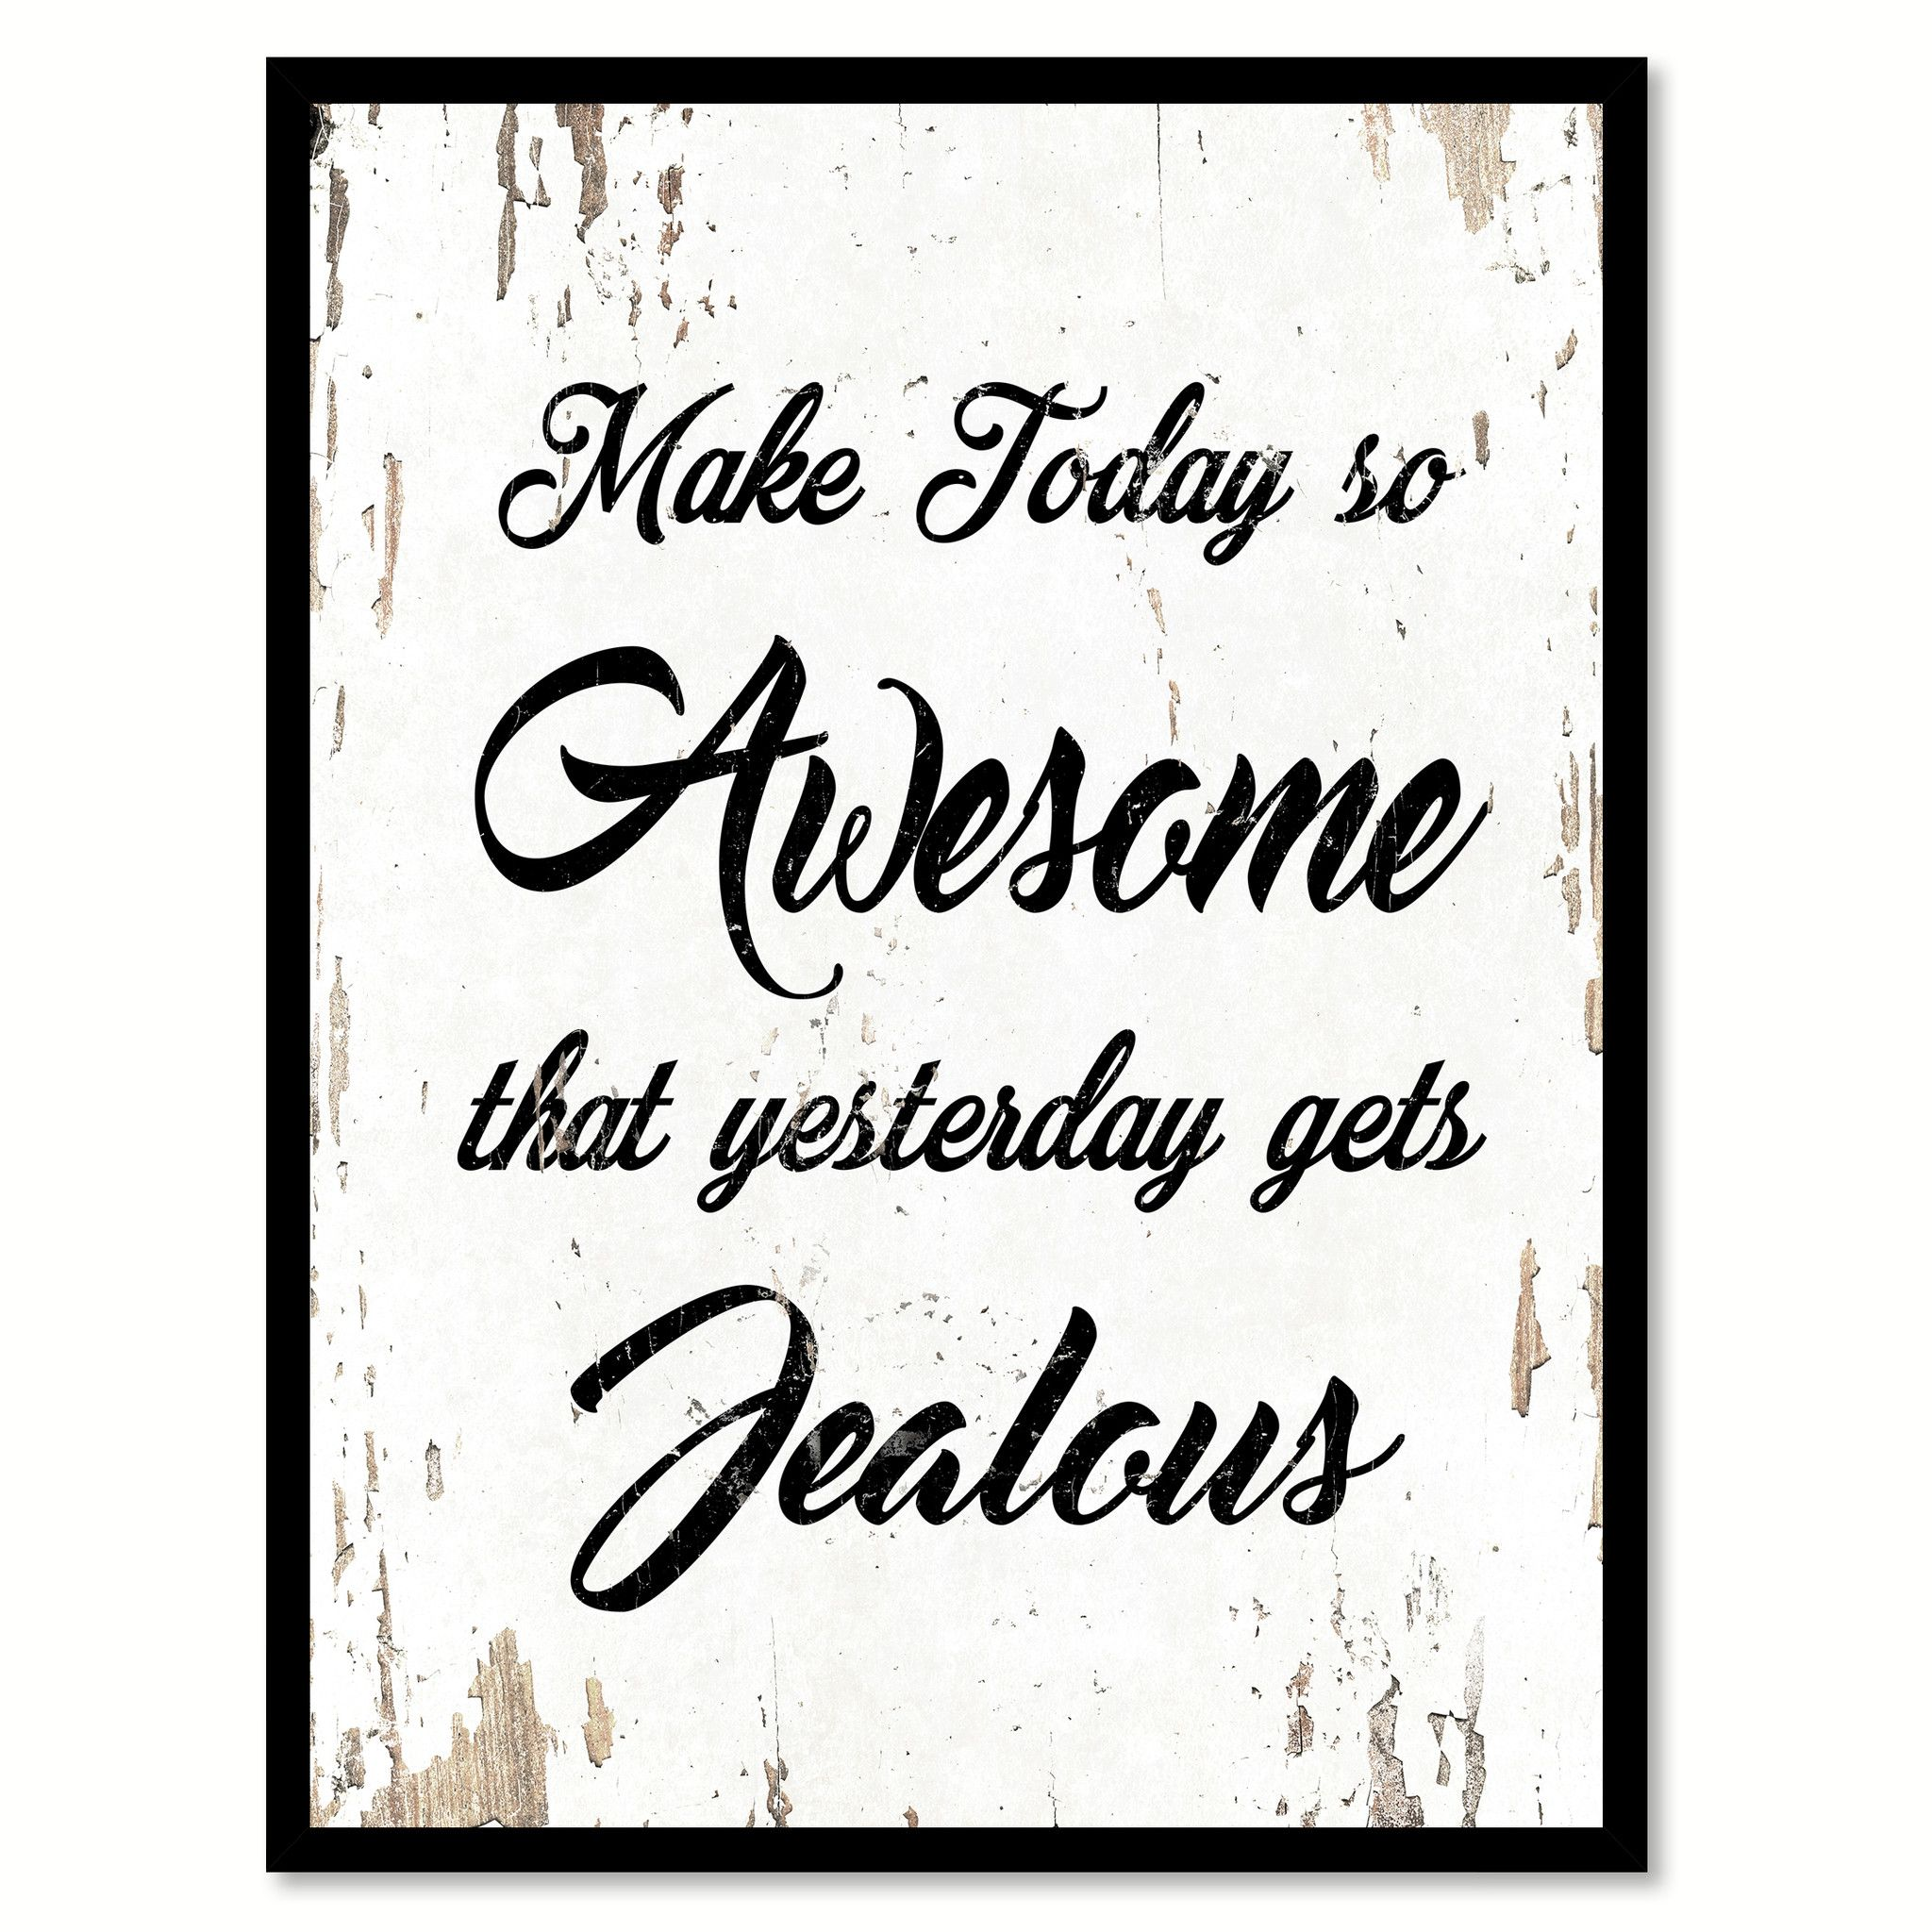 Make Today So Awesome Quote Saying Home Decor Wall Art